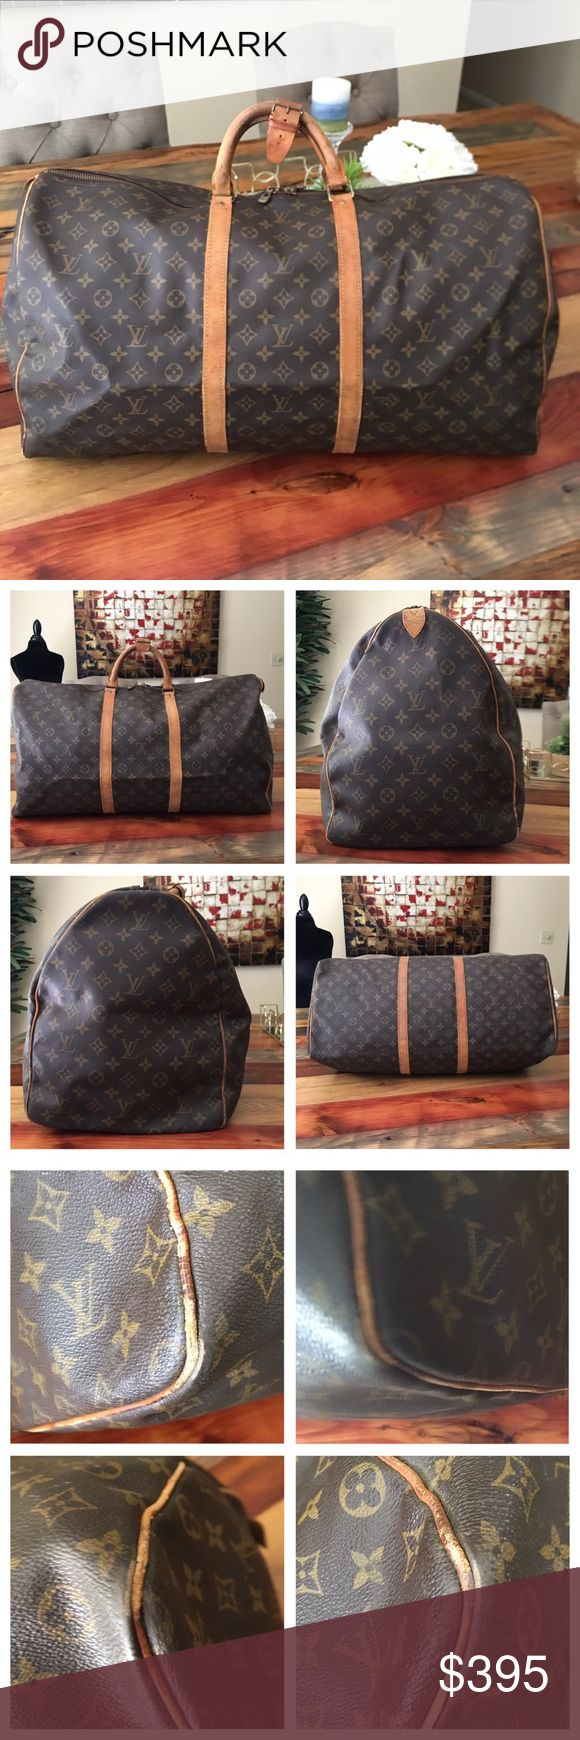 """AUTHENTIC LOUIS VUITTON KEEPALL 60 100% Authentic Louis Vuitton Keepall 60. The largest size. Travel with luxury. Get ready for Summer with this amazing vintage bag. Tons of life left. Monogram canvas has no scratches or tears. Wear on corners, no exposed piping. Zipper works properly. Handles show wear, no cracks 👍🏻 Inside is in good shape. Minor storage smell. Hardware has tarnished. W23.6x H12.9""""x D10.2"""" Handles 4.7"""" No trades Louis Vuitton Bags Travel Bags"""